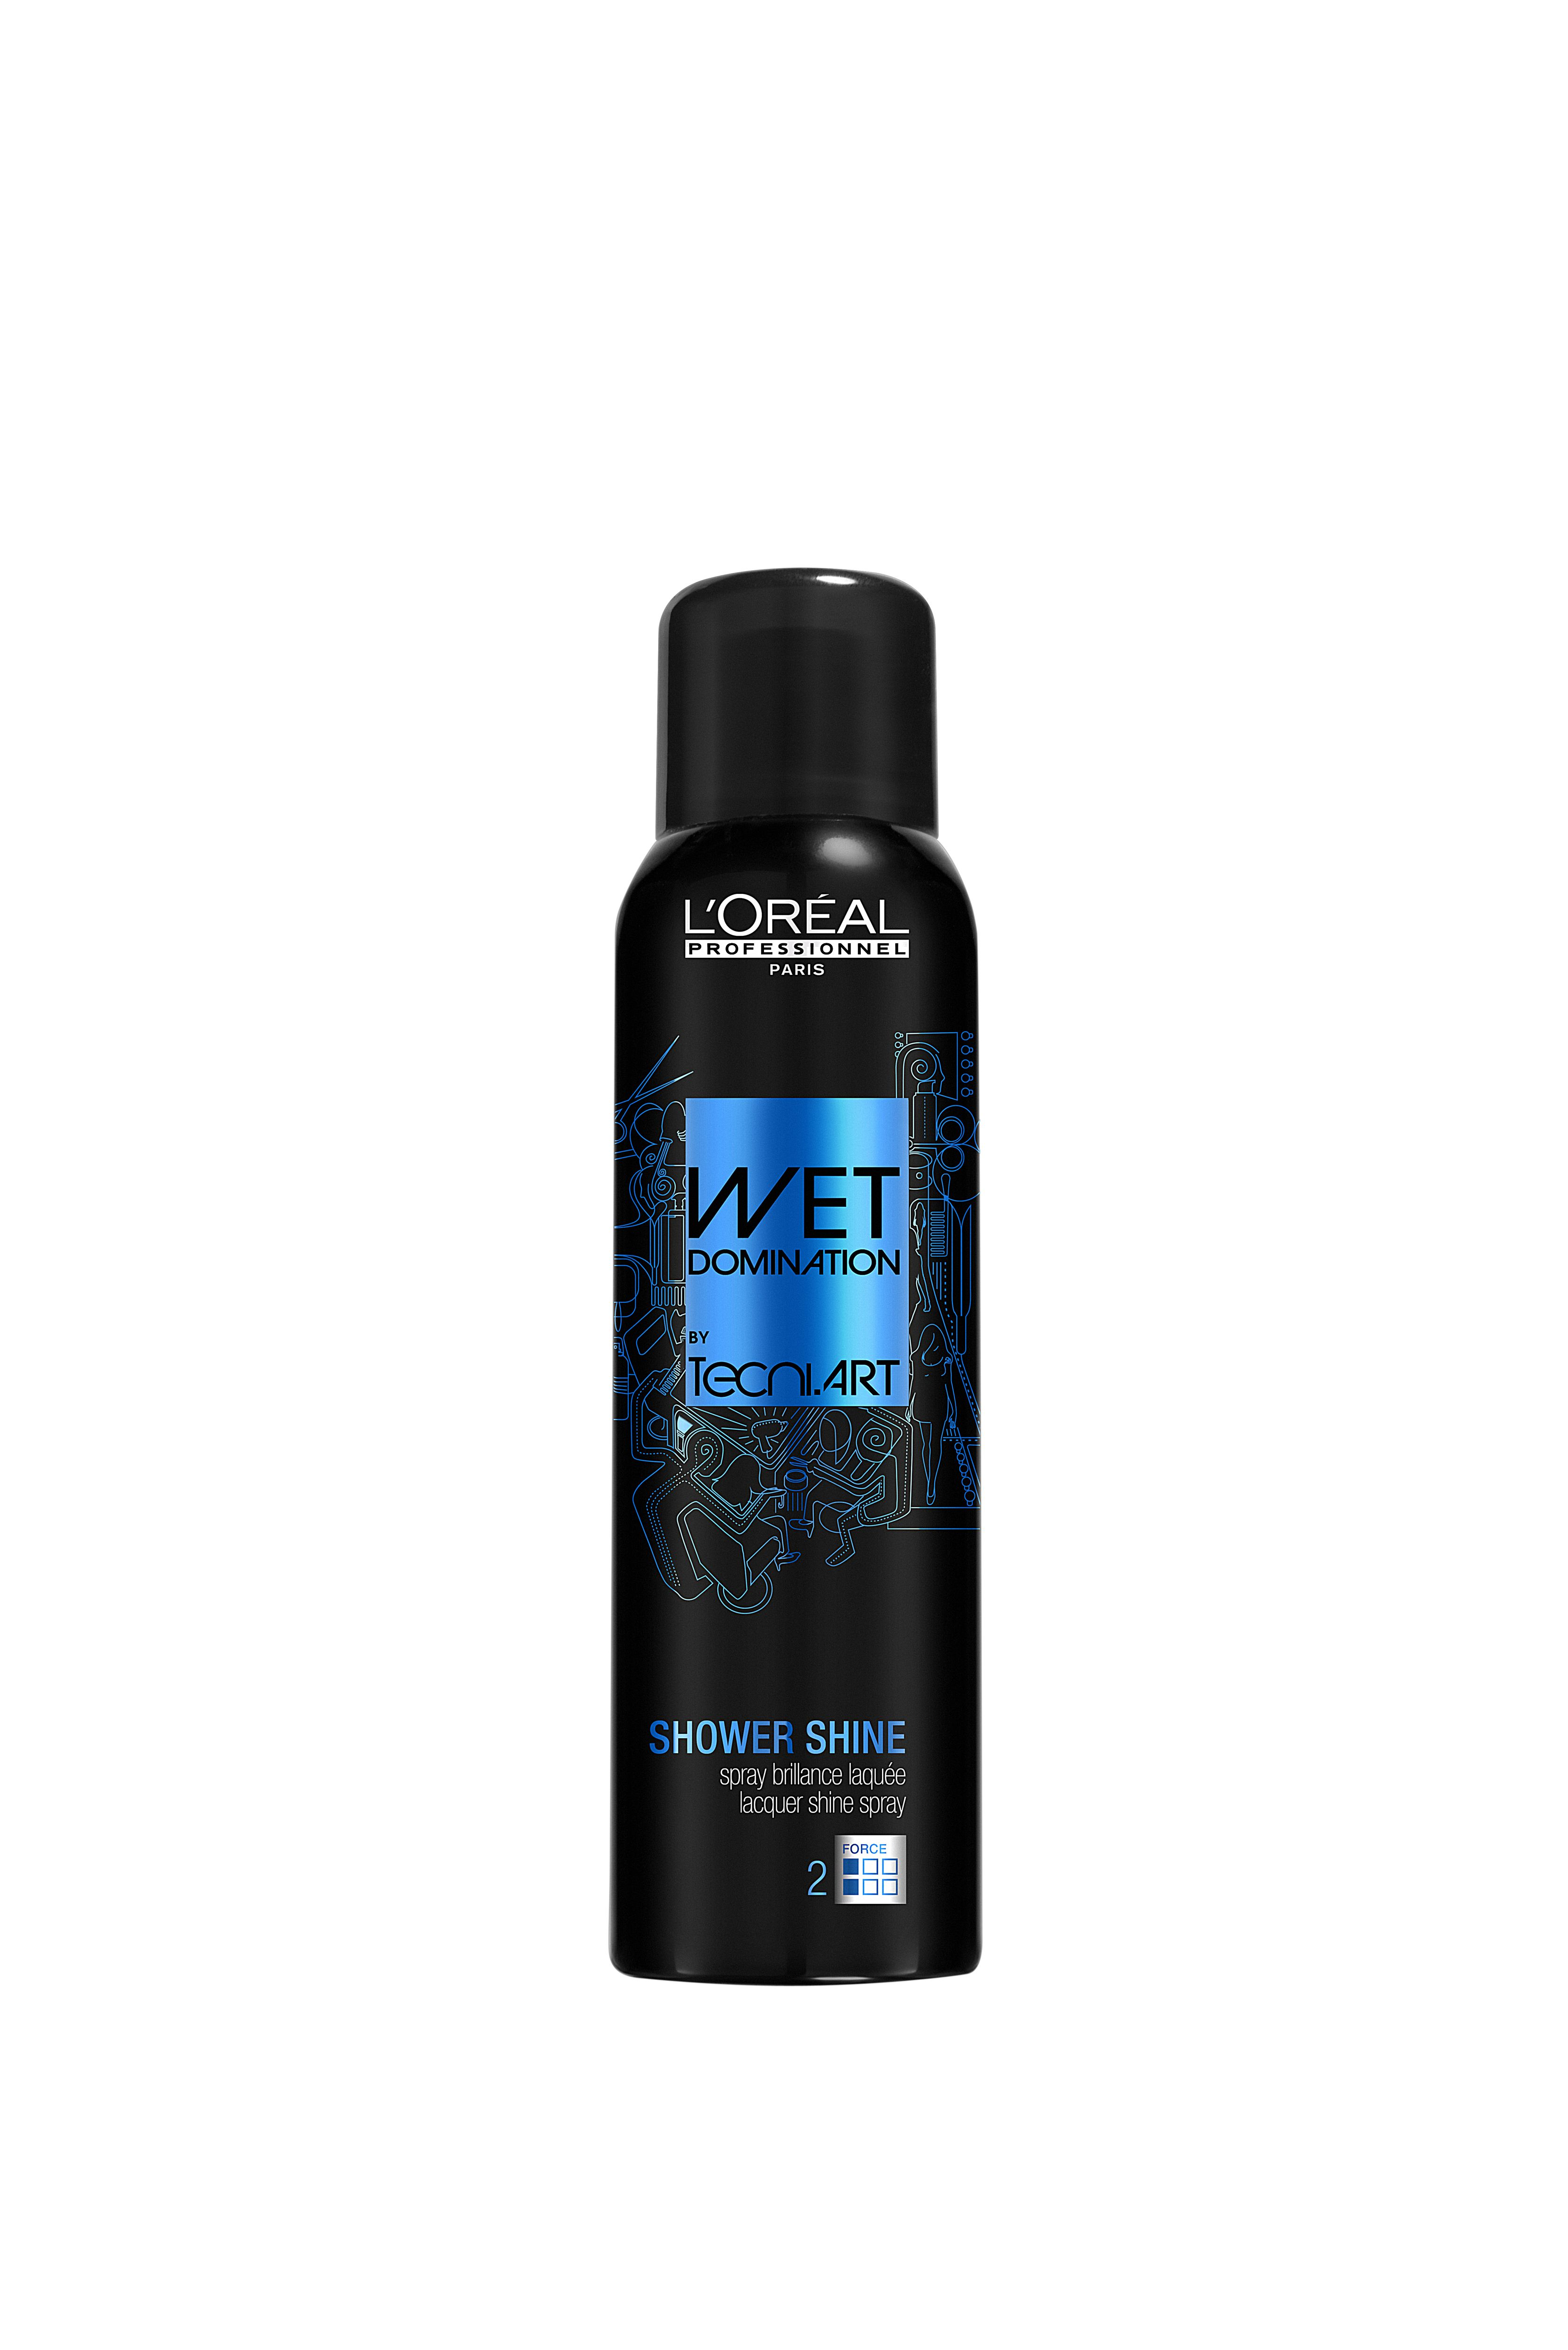 L´Oréal Professionnel Wet Domination By Tecni.ART Shower